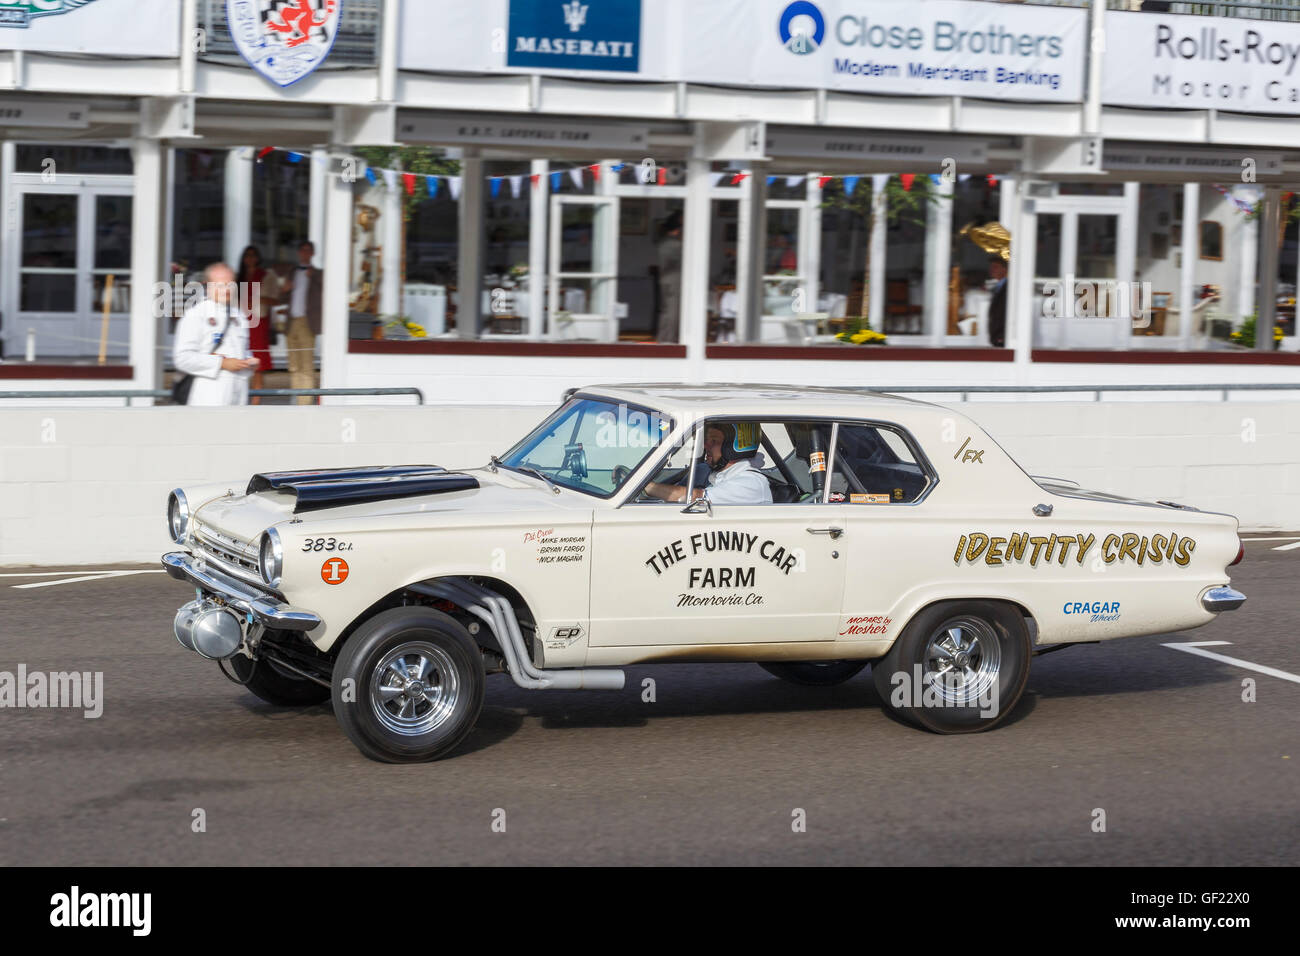 1964 Dodge Dart 'Identity Crisis' 383cu inch Gasser on track at the 2015 Goodwood Revival, Sussex, UK. - Stock Image